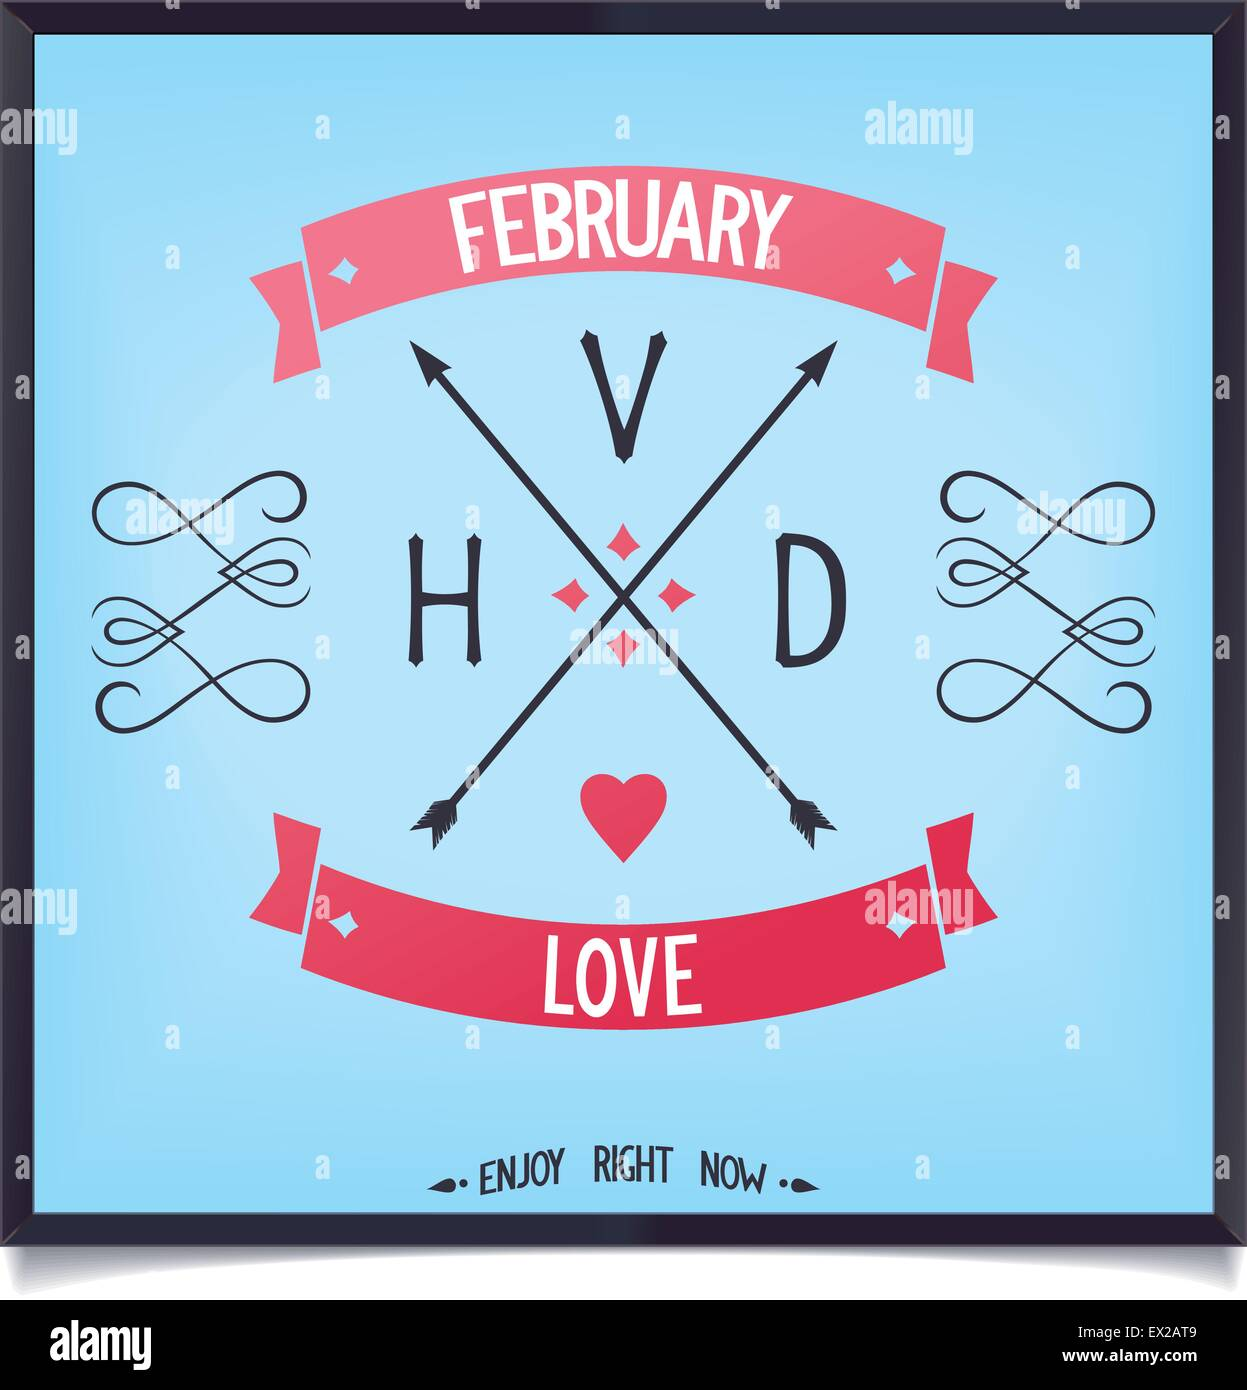 Sign of Valentine's Day, love in February. Vector eps8 - Stock Vector